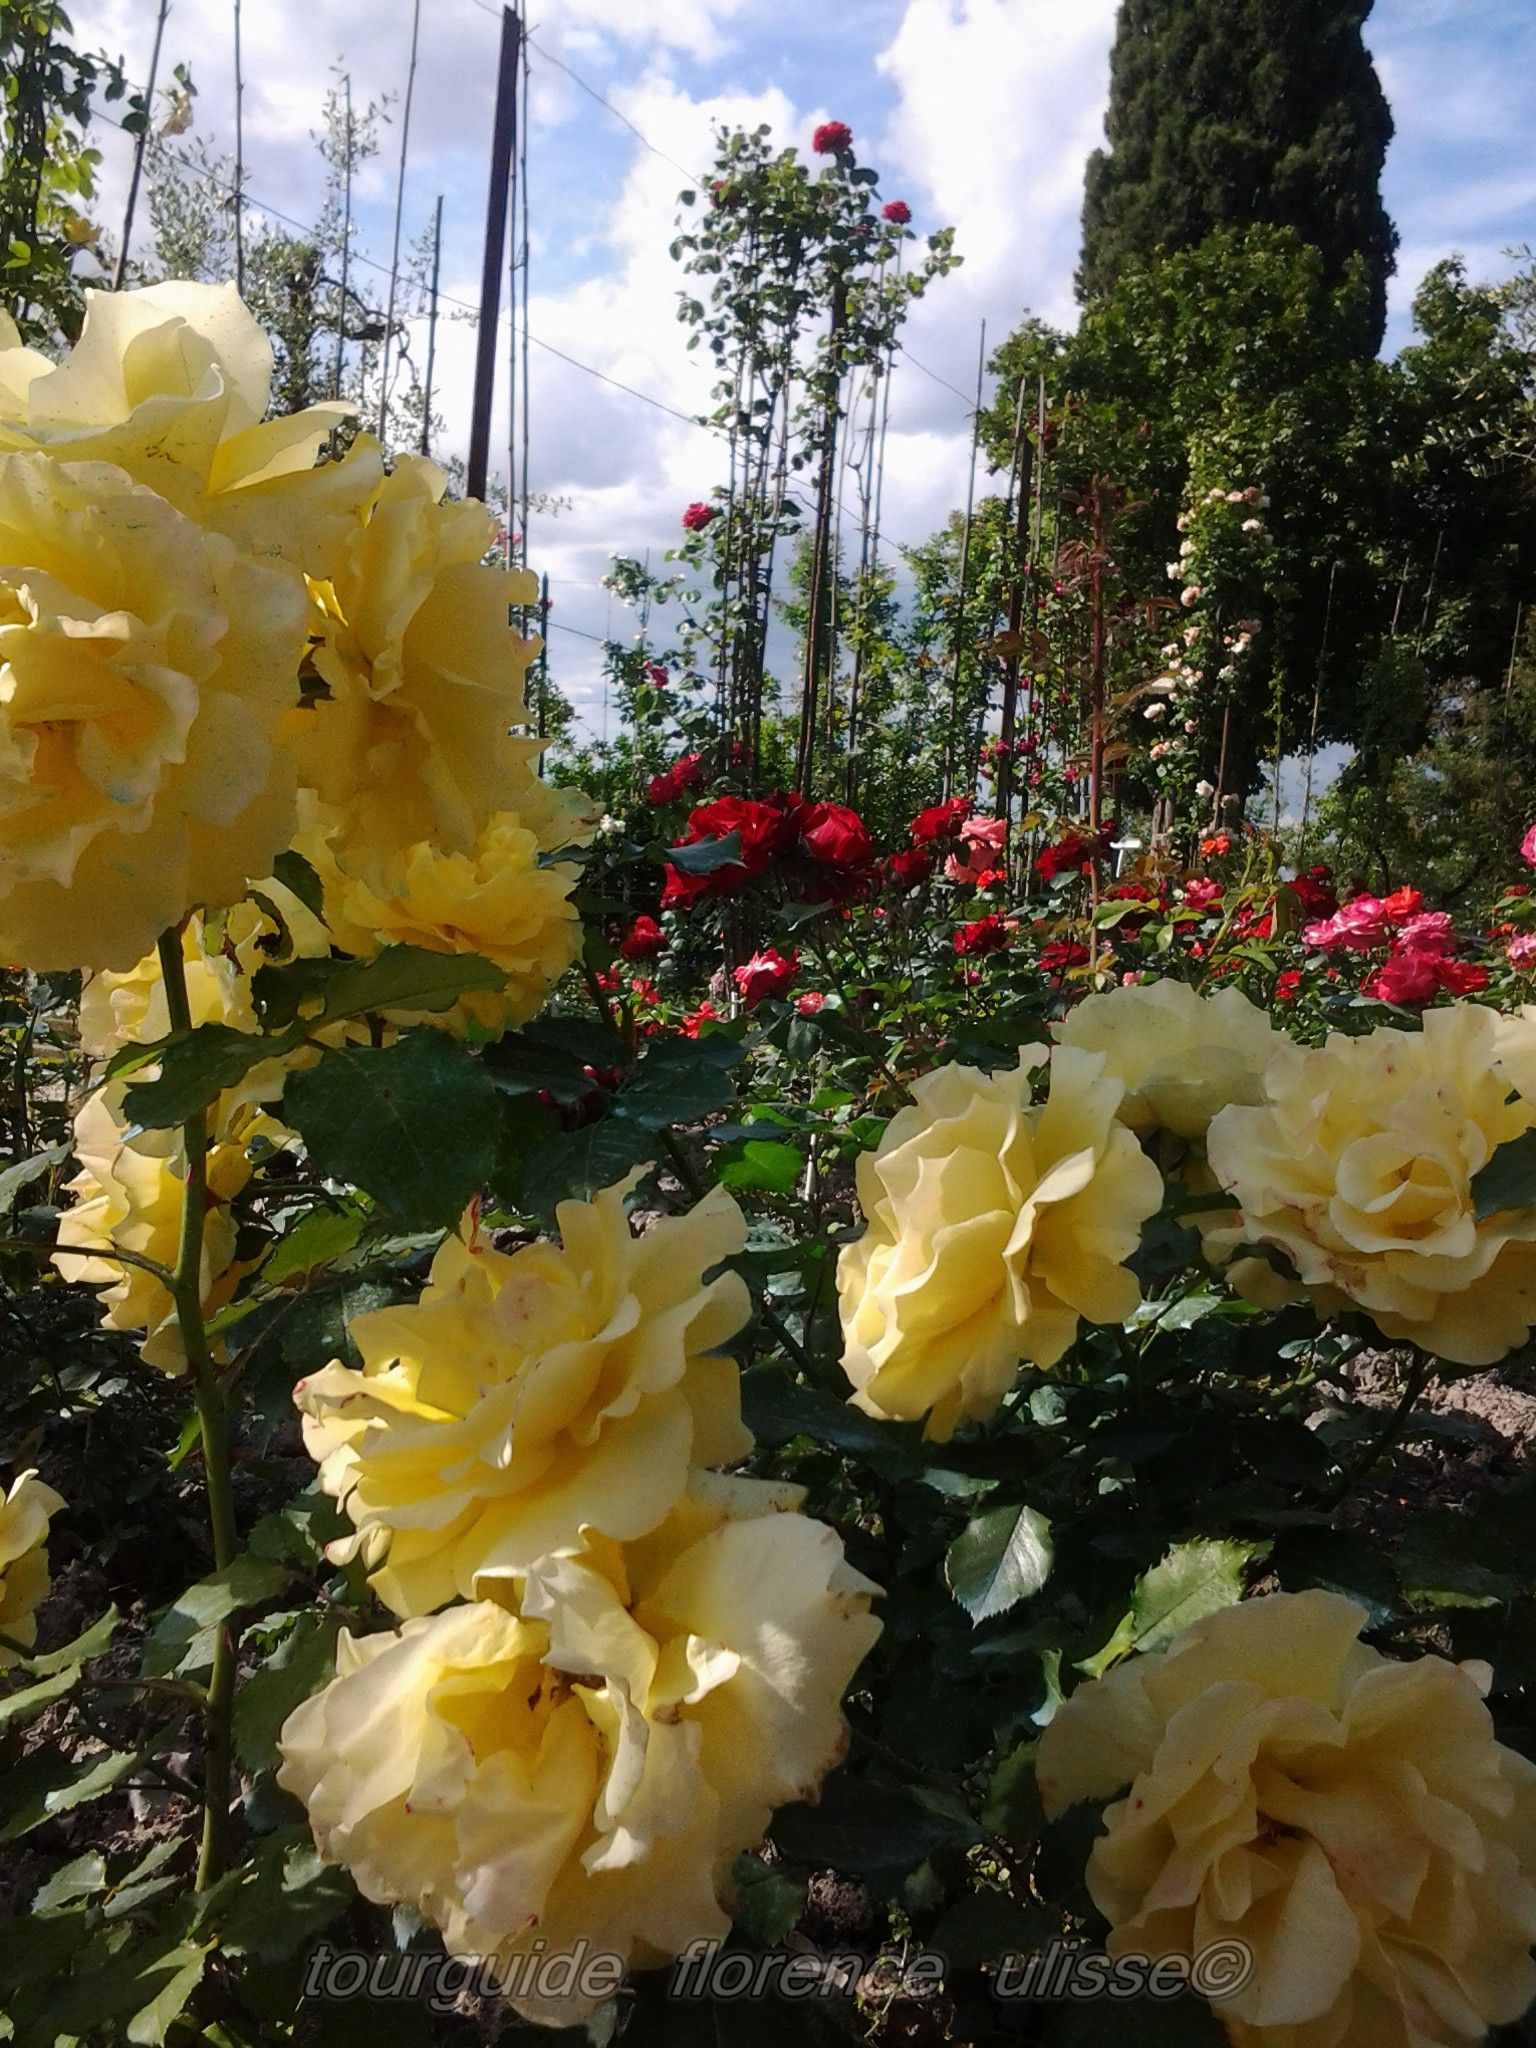 beautiful contrast between the yellow and the red roses!